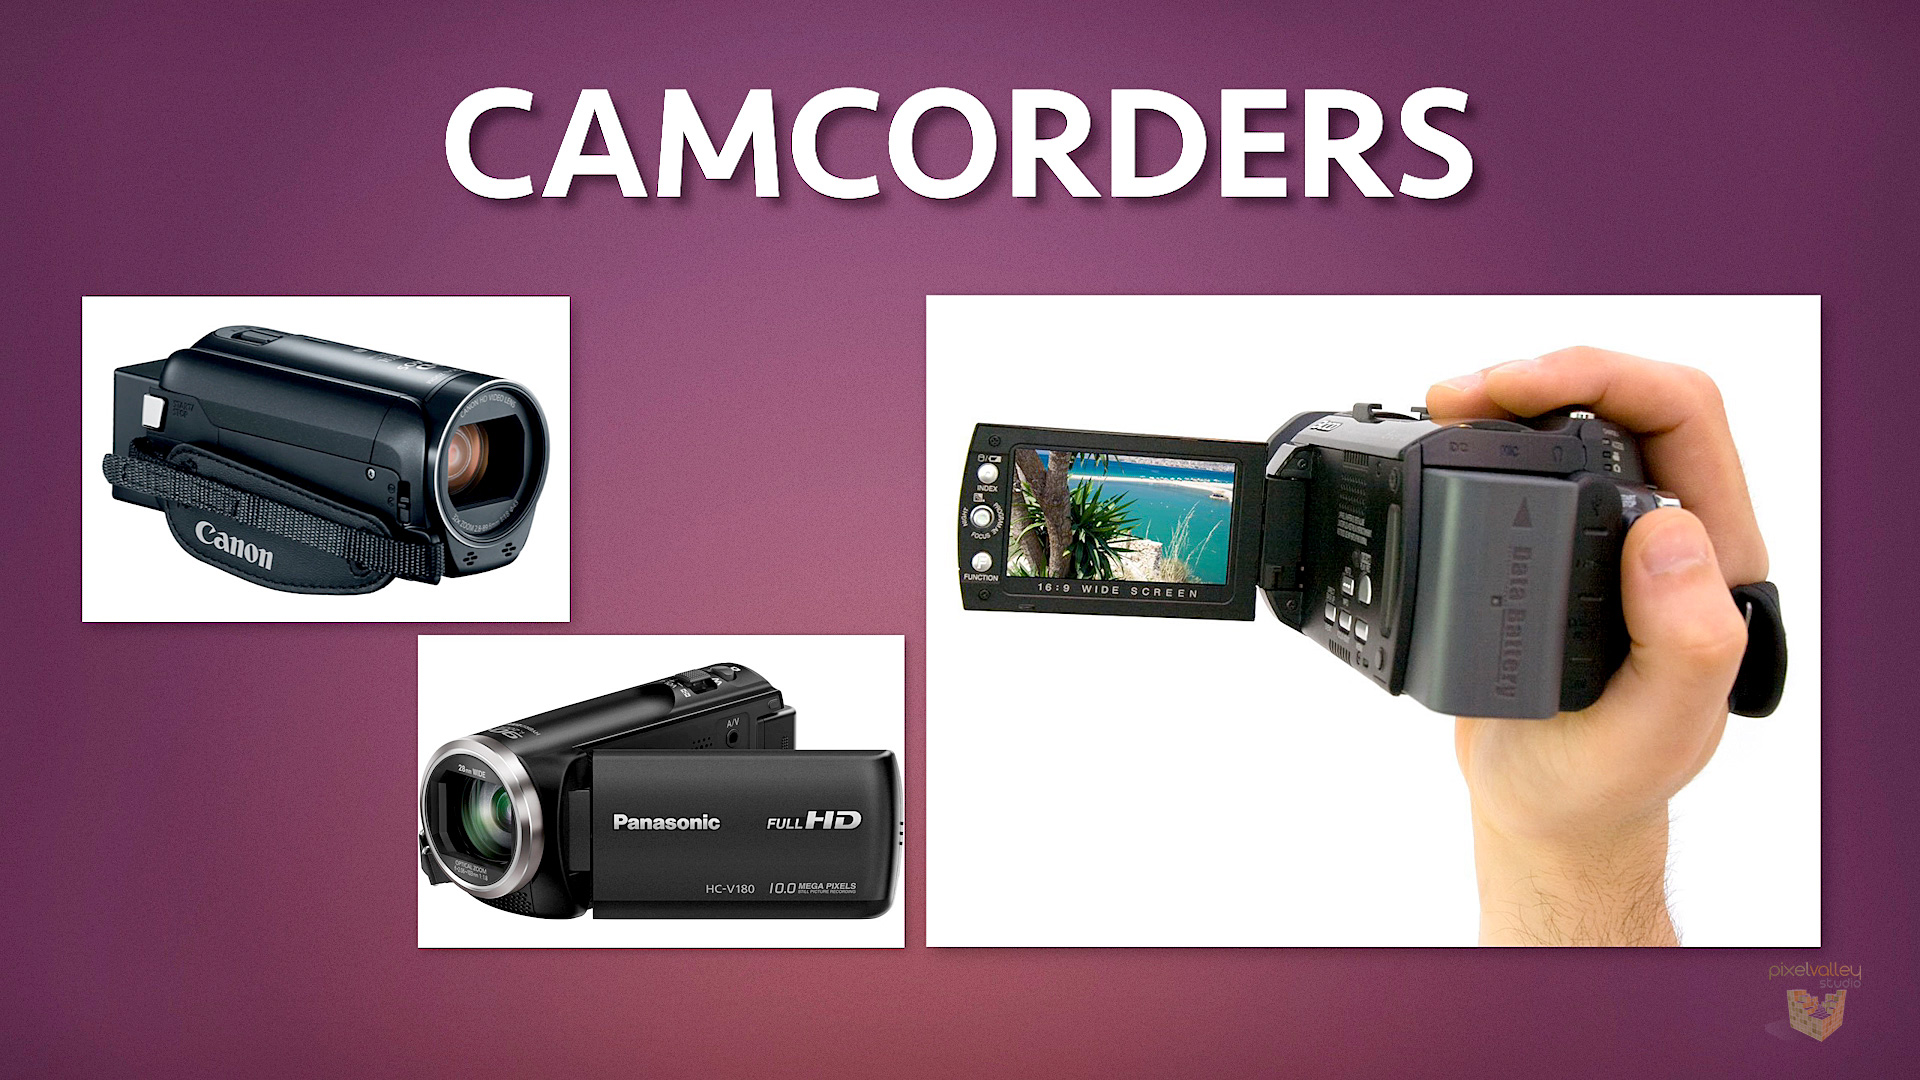 Camcorders still exist and though they're on the low price end, they still have their uses.